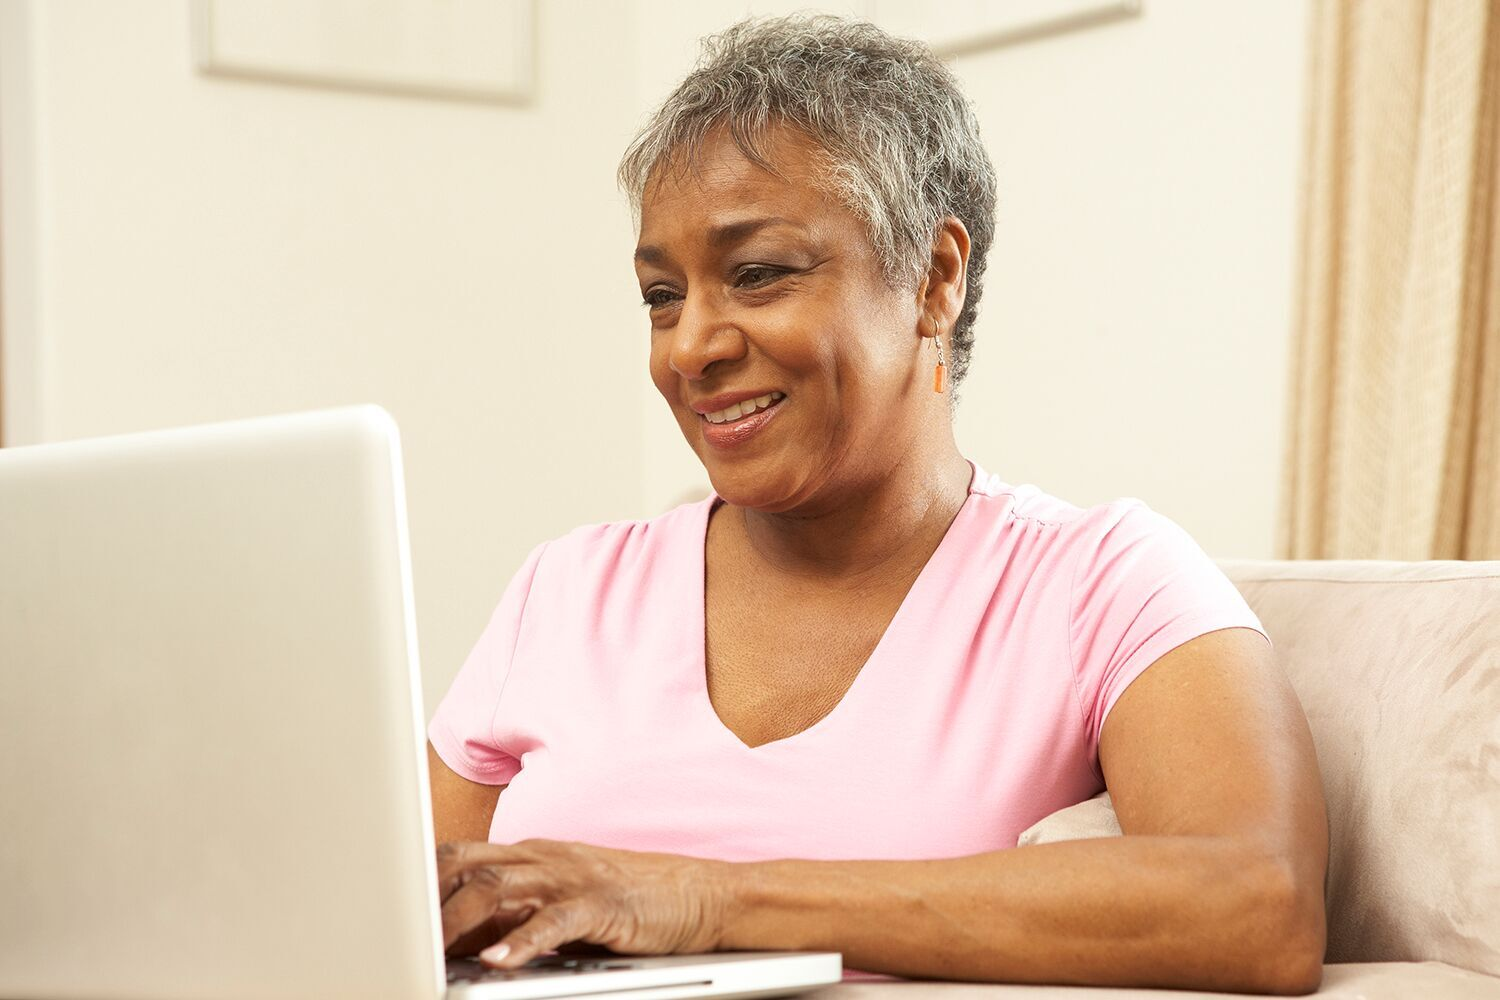 Woman looking up medical information on her computer